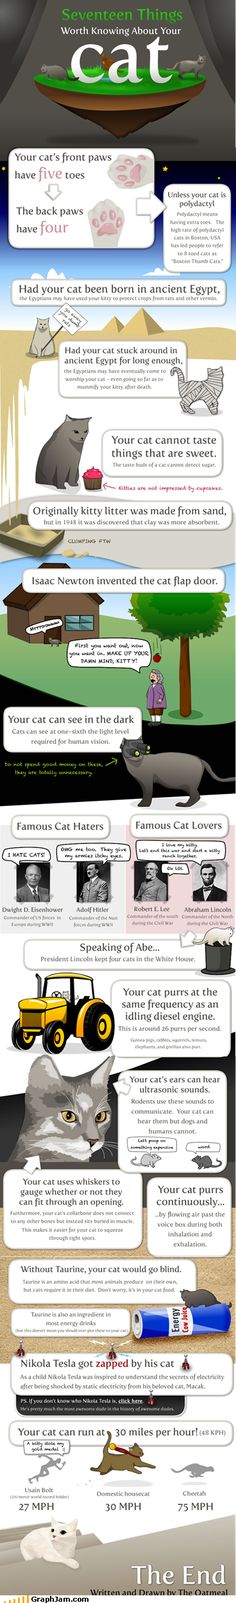 funny graphs - Kitties!